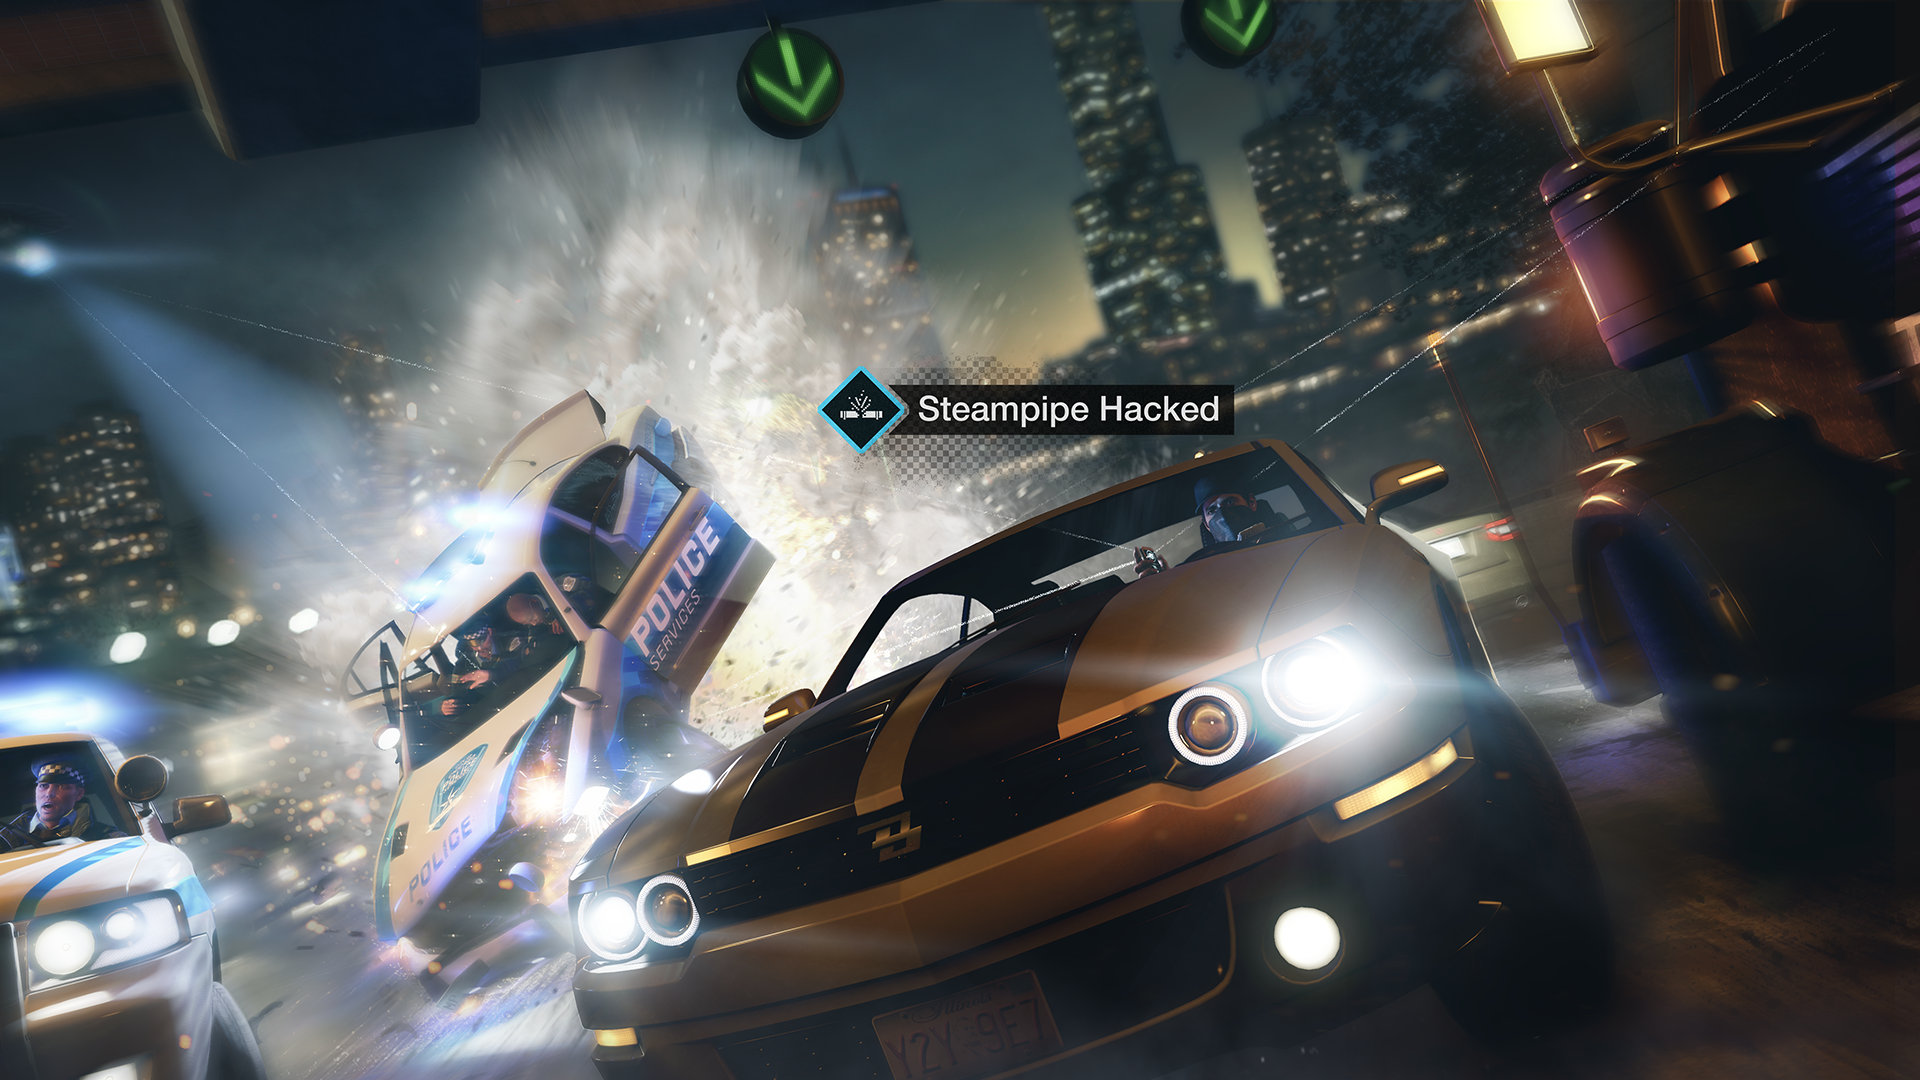 Watch Dogs 2 Wallpaper 1920x1080: Watch Dogs 2 Wallpapers High Quality